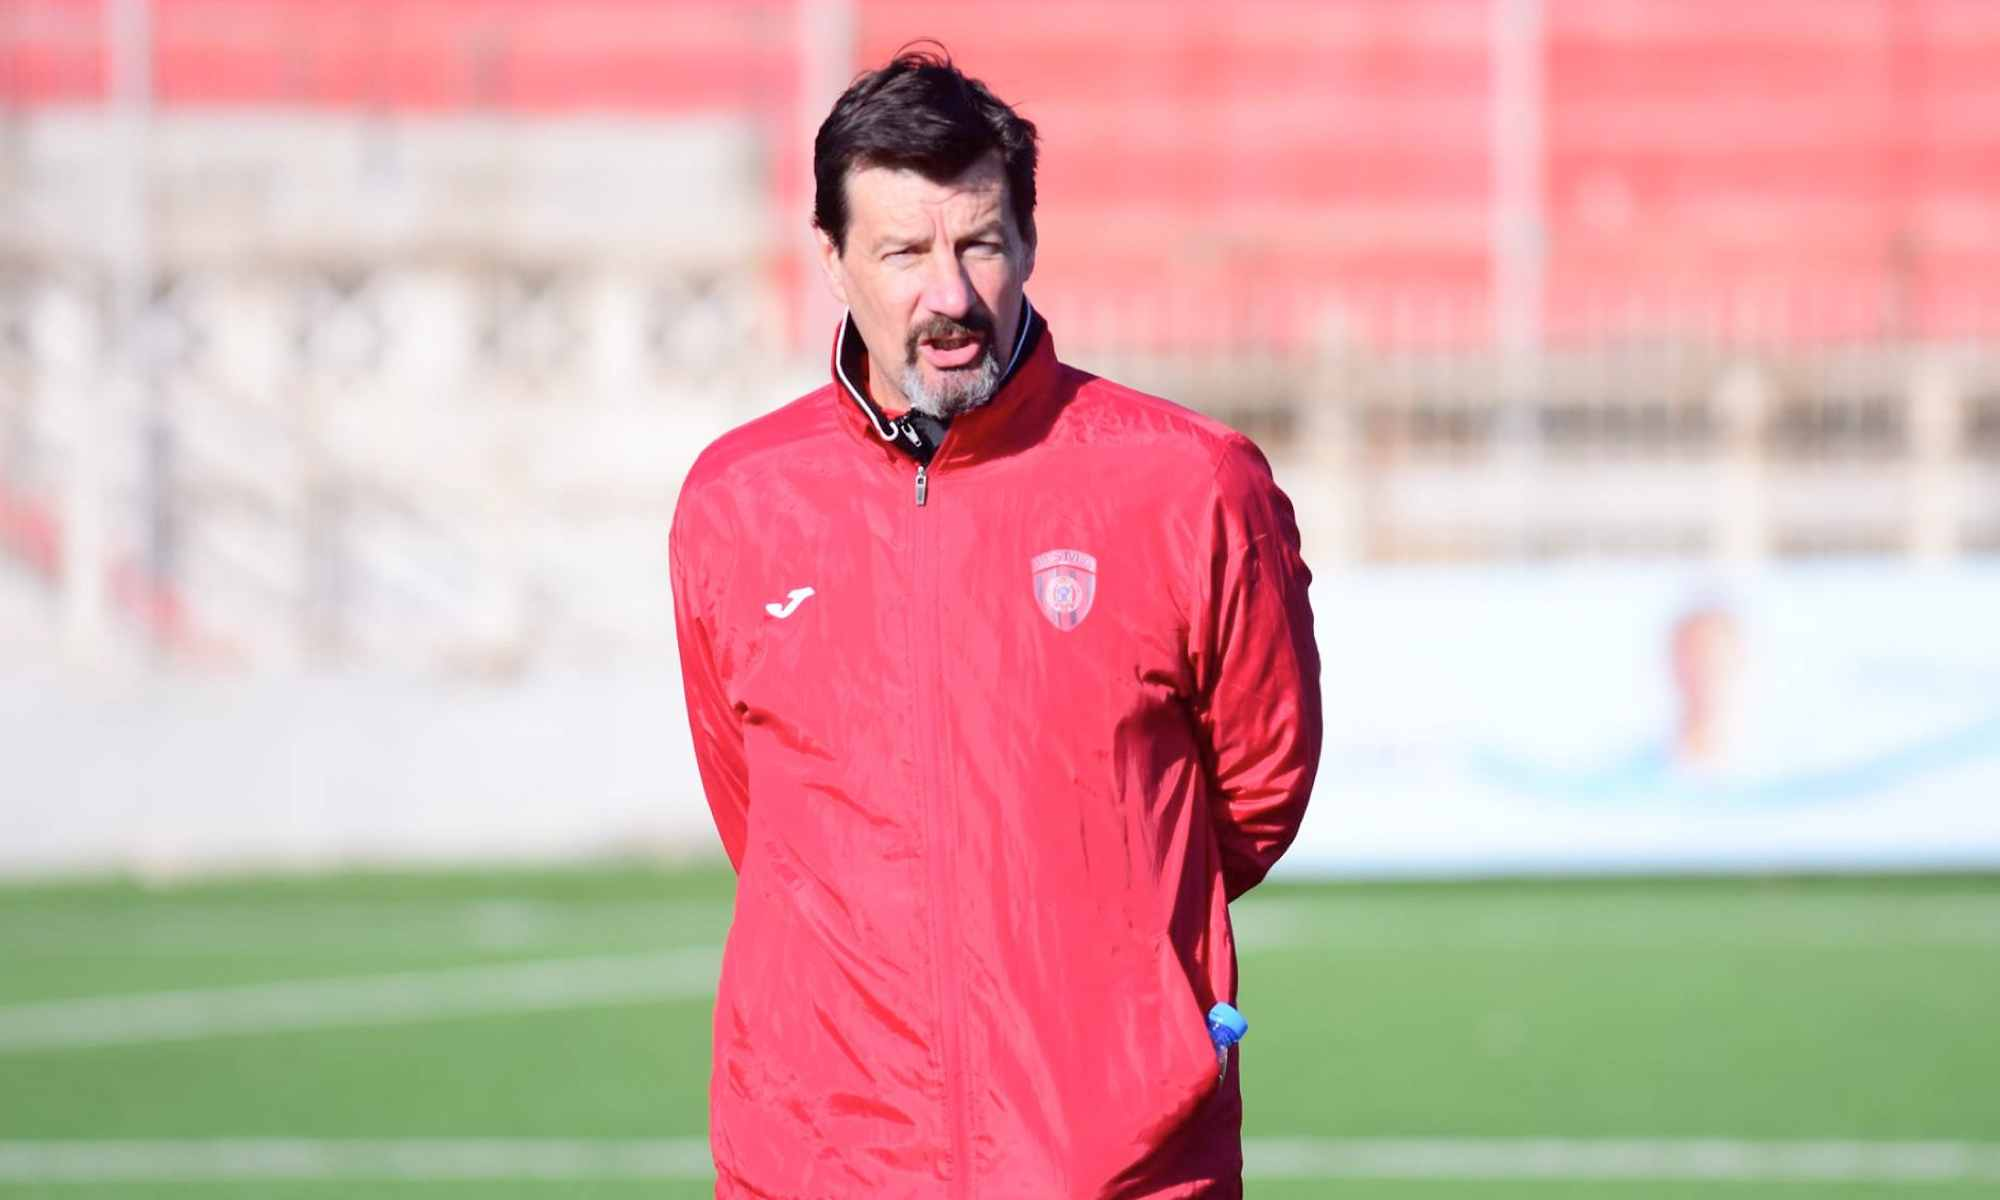 thierry froger coach usma